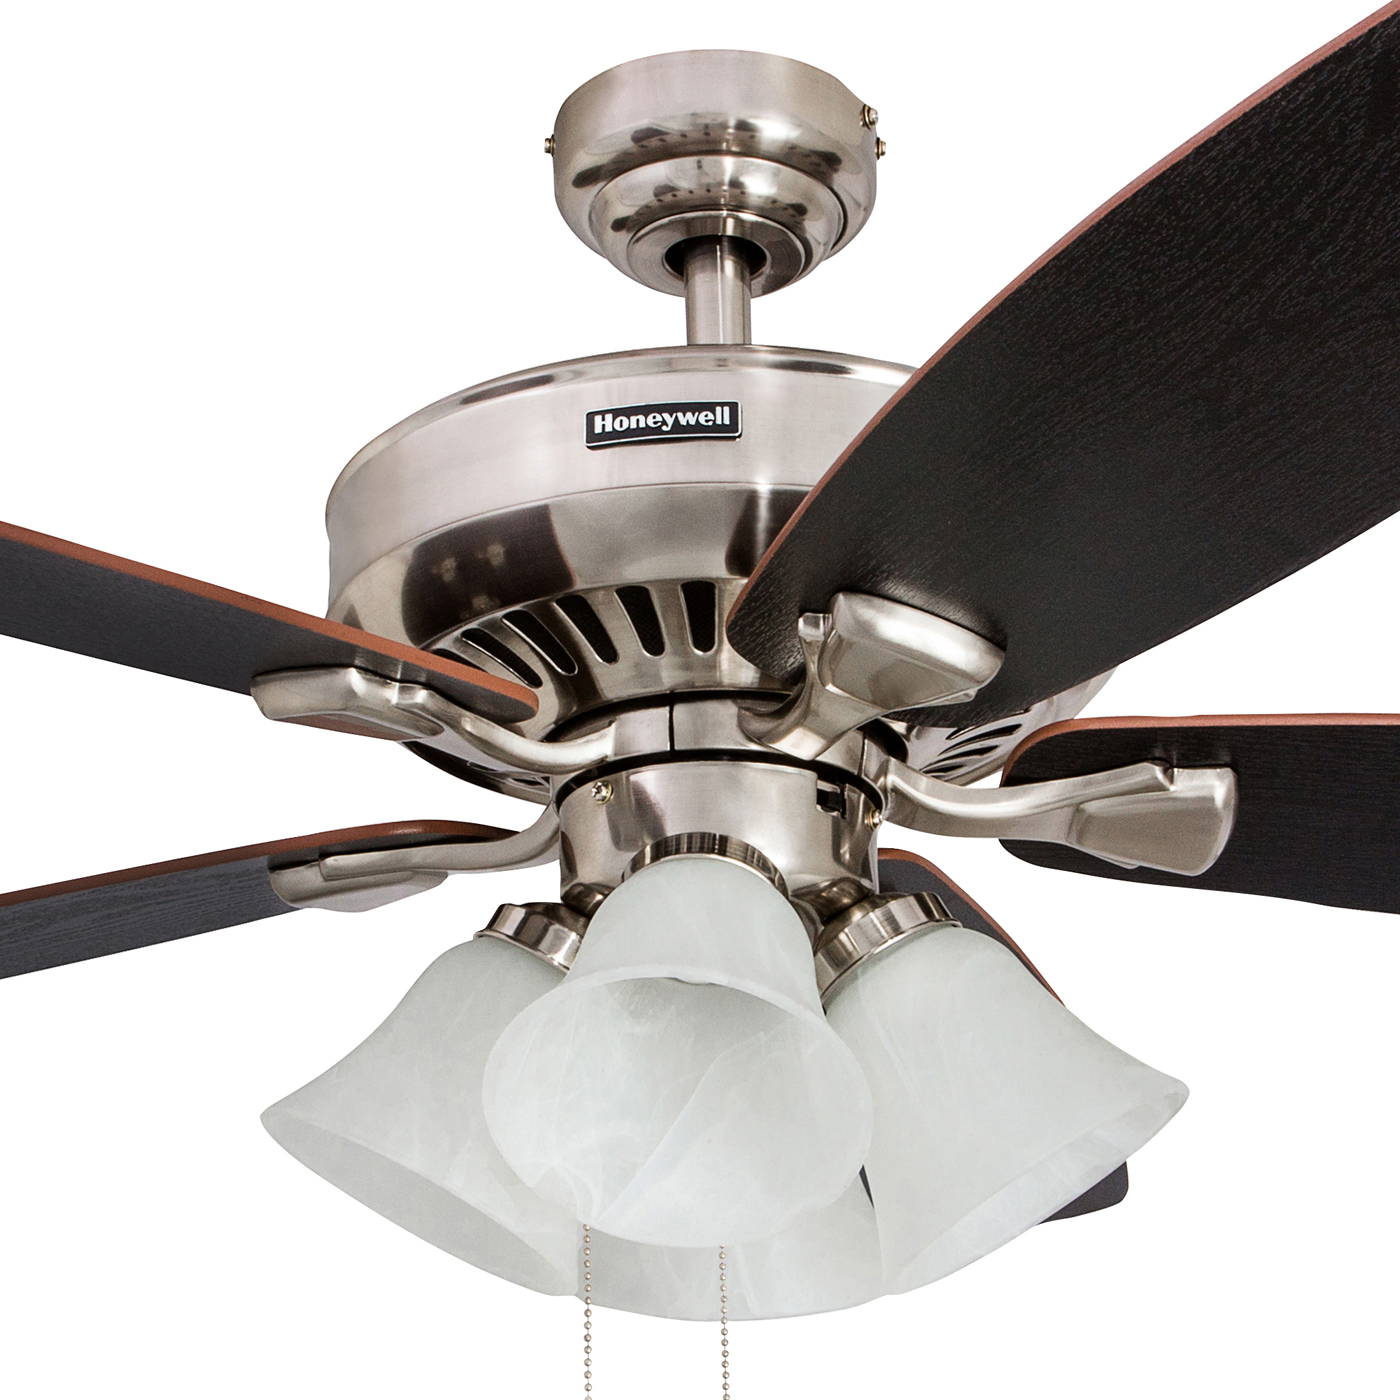 Wood Ceiling Fan 52inch 3 Leaf Led 40w Included With 2 Size Rod For Livingroom Bedroom Dinning Room And Digestion Helping Ceiling Fans